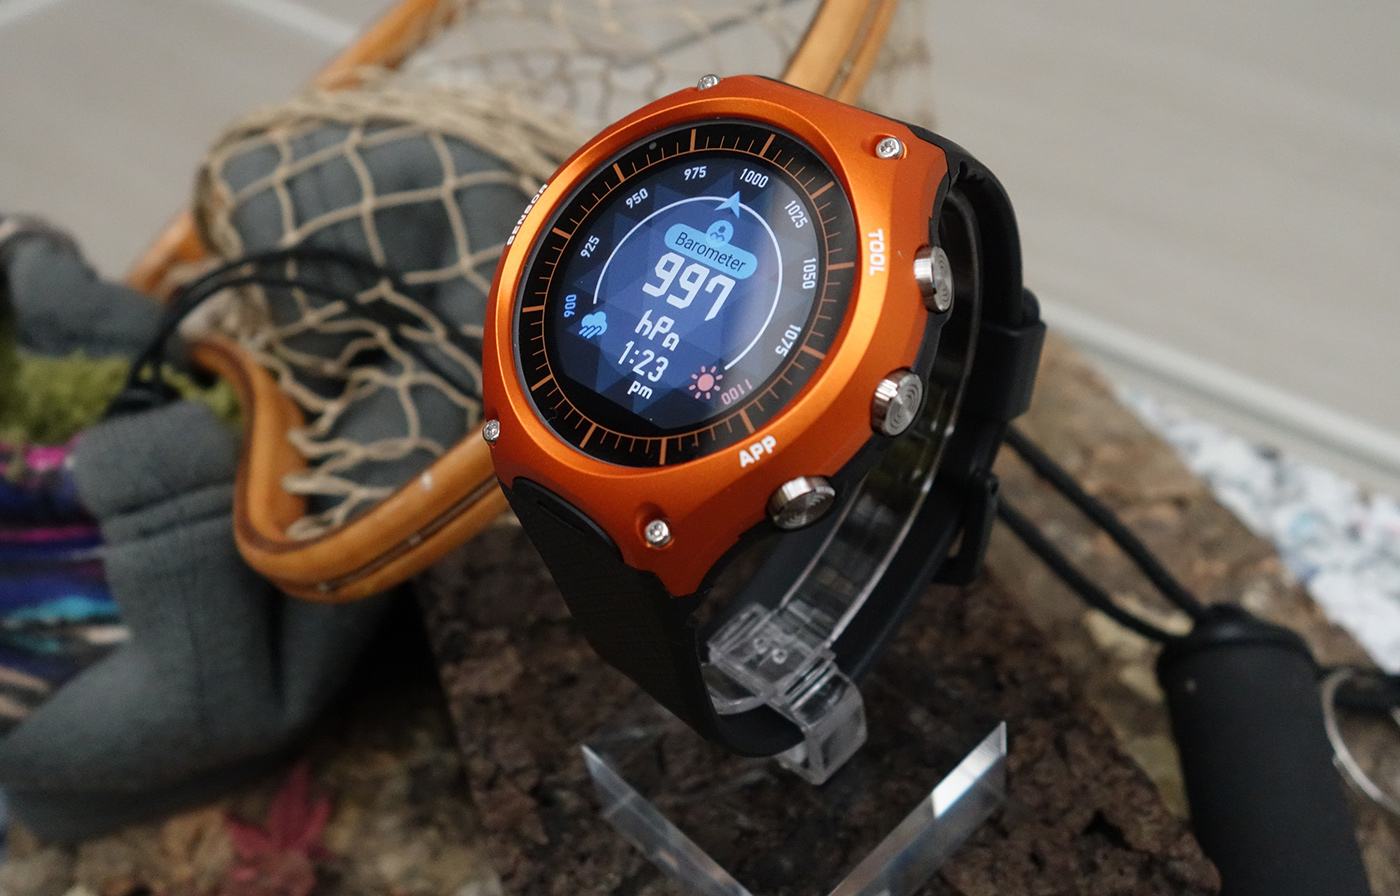 Casio's first smartwatch is an even more rugged G-Shock